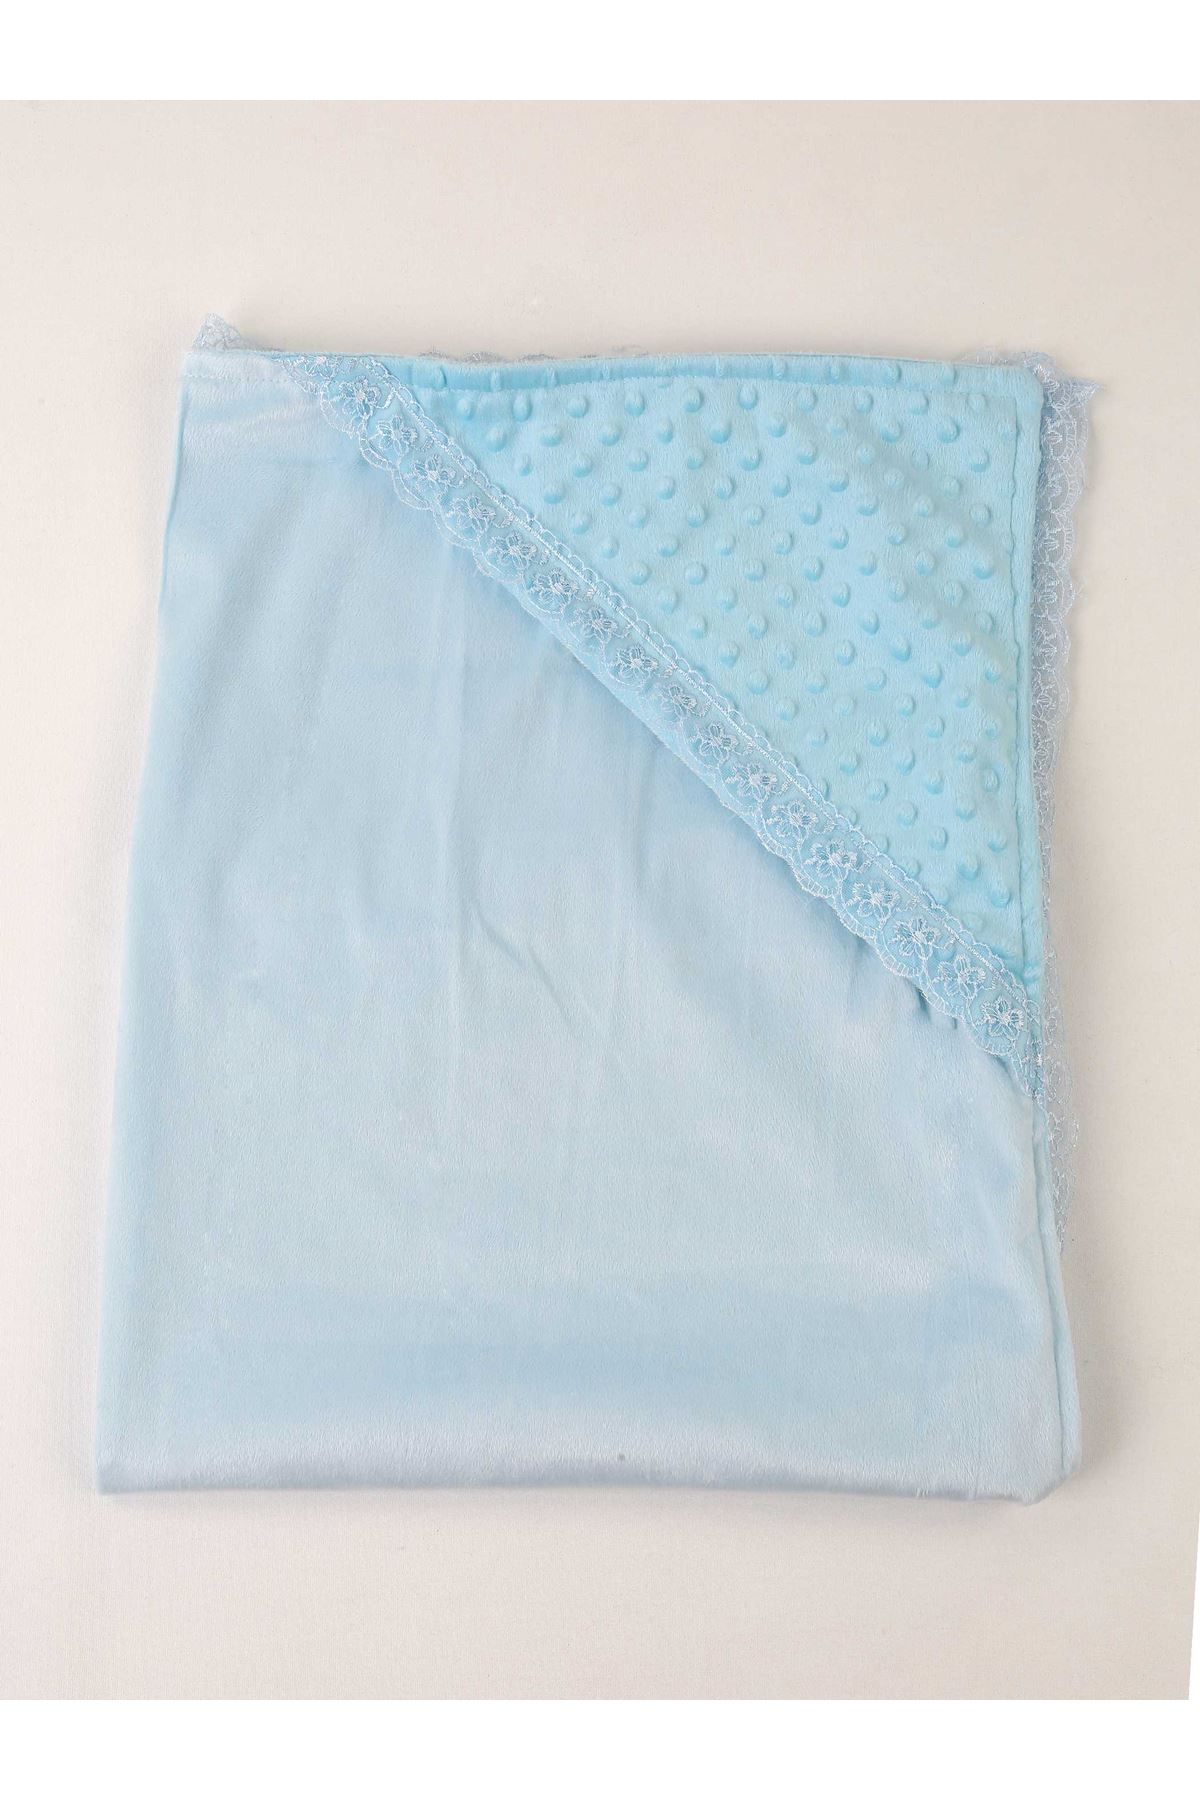 Blue 85x85 cm Male Baby Swaddle Blanket